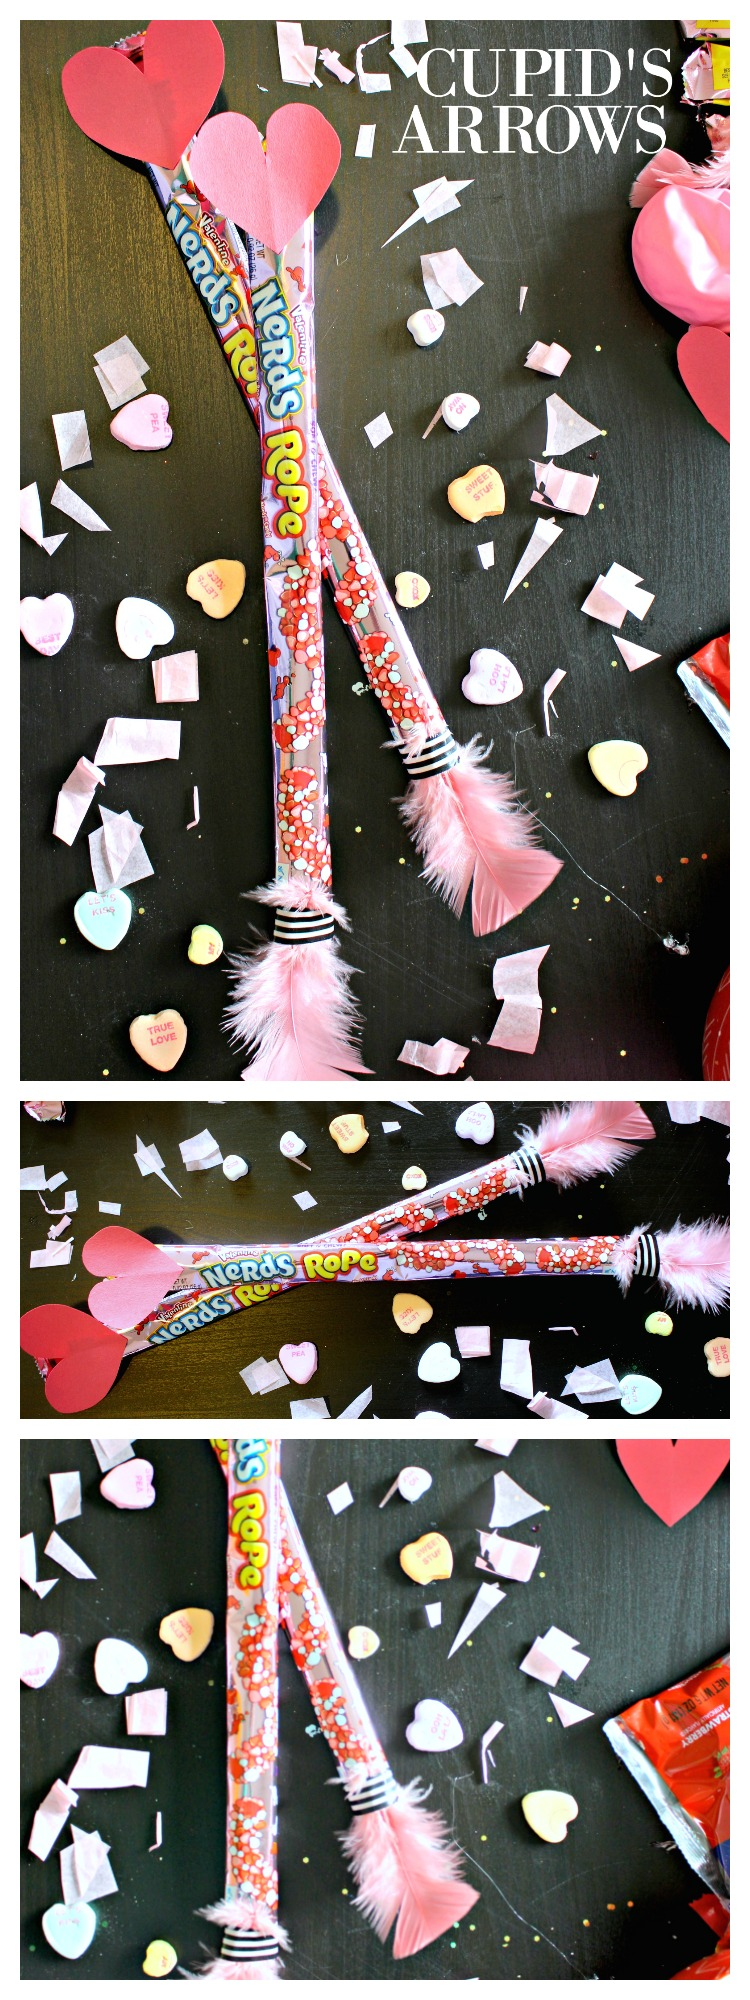 Looking for a Cheap & Easy Valentine's Day Gift?! These Candy Cupid's Arrows are Great for Any of Your Valentine's! #ValentinesDay #ValentinesDayGift